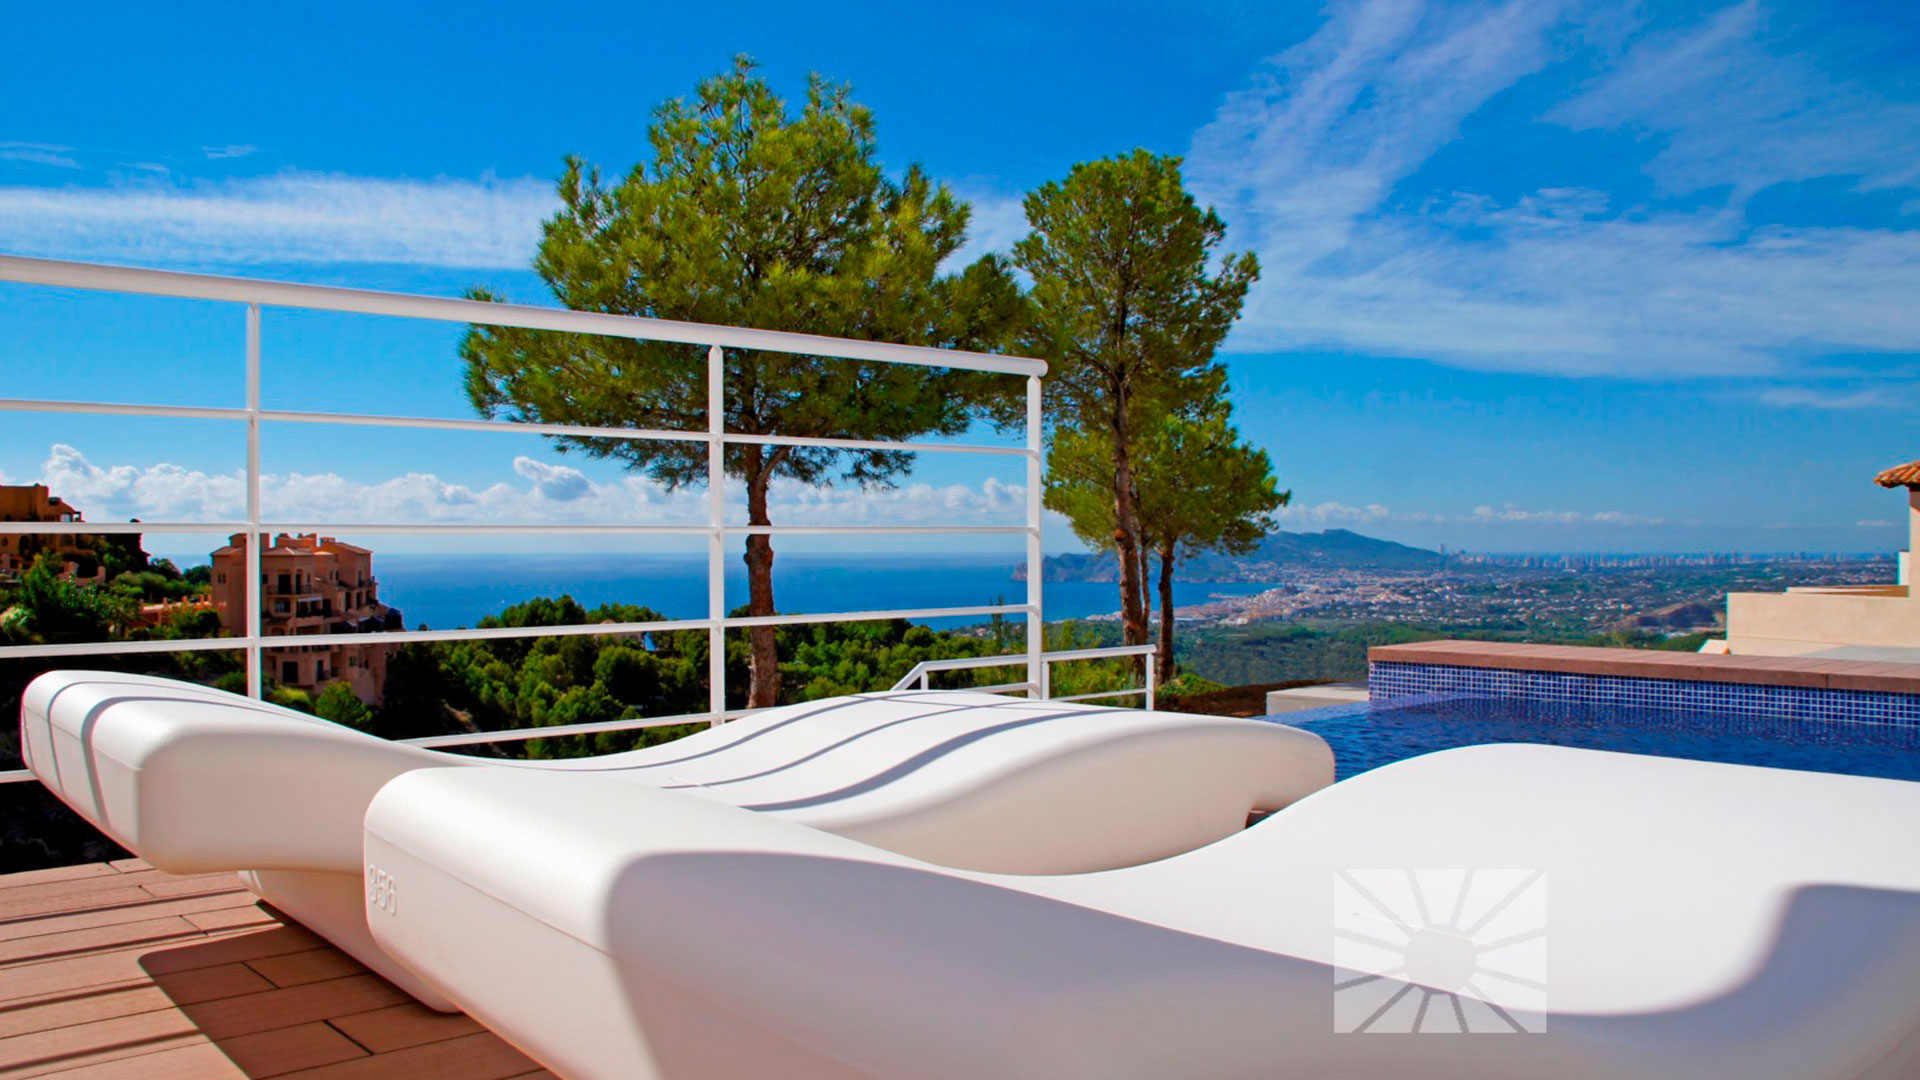 De marketing Extérieur Contemporain Retour au début AZURE ALTEA HOMES HB002 AZUR